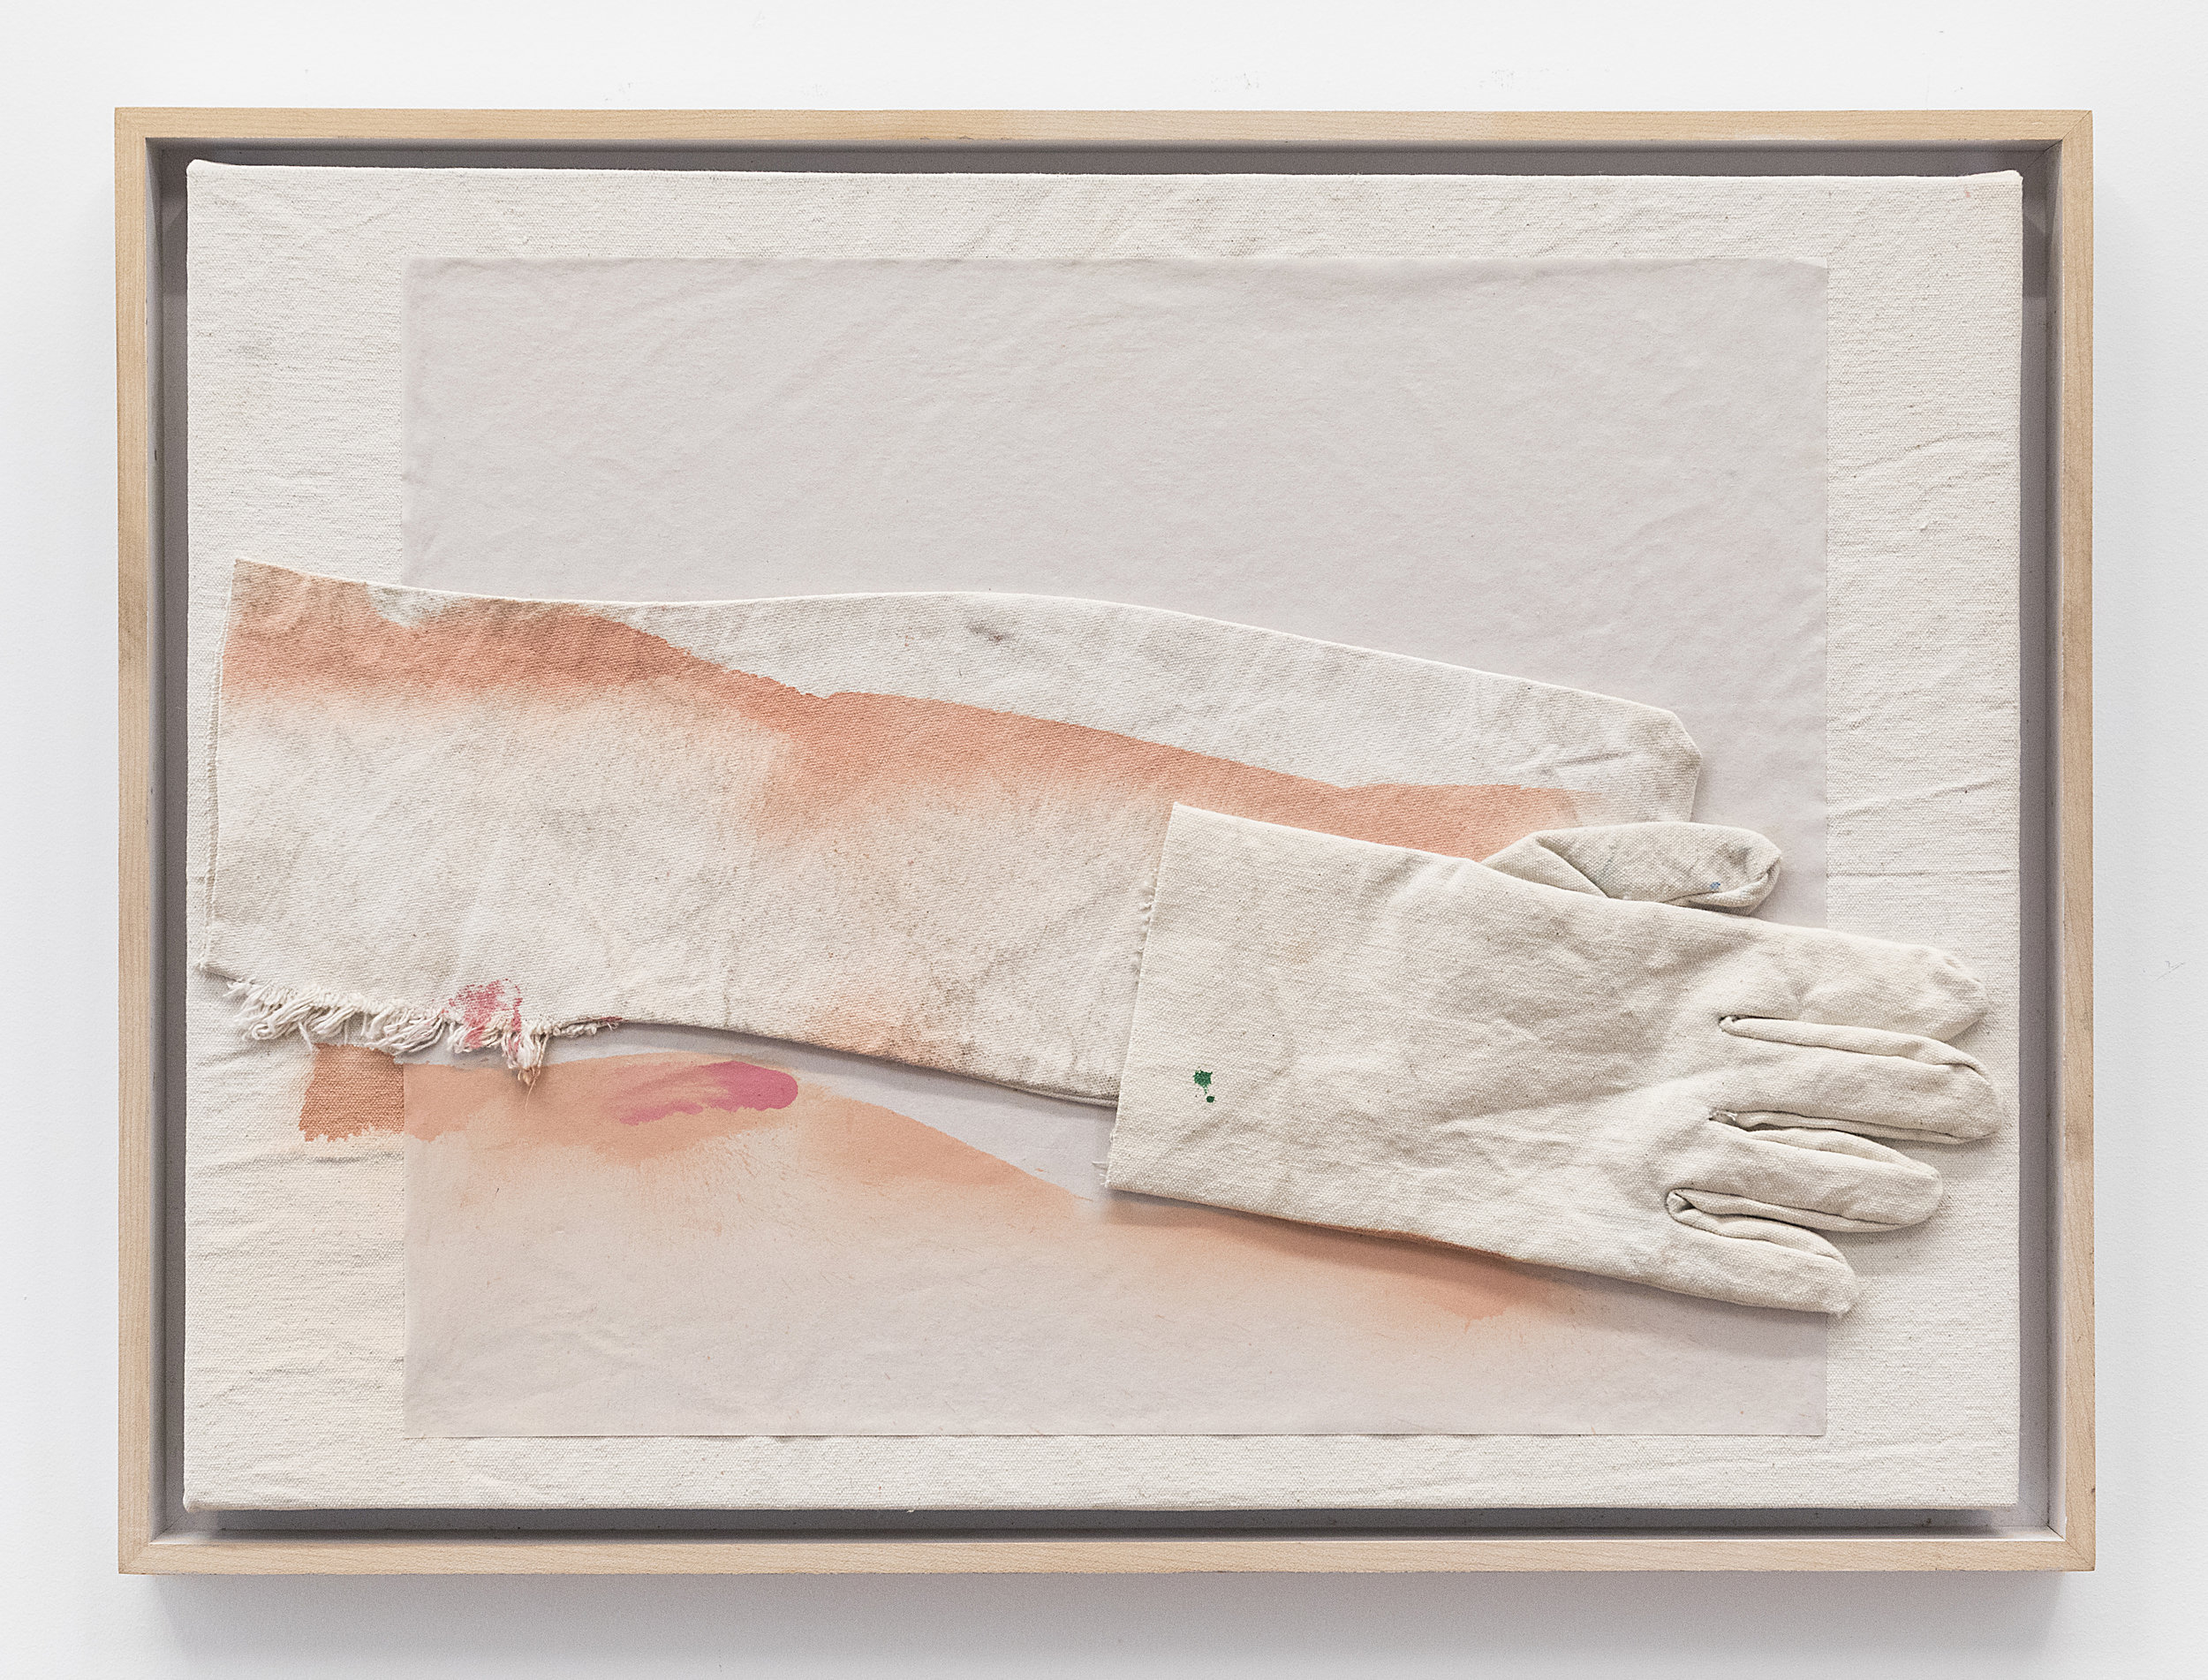 Jess Fuller  An Unopened Letter of Love  2018 Acrylic, gesso, newsprint, and glove on canvas 16 x 22 3/4 inches